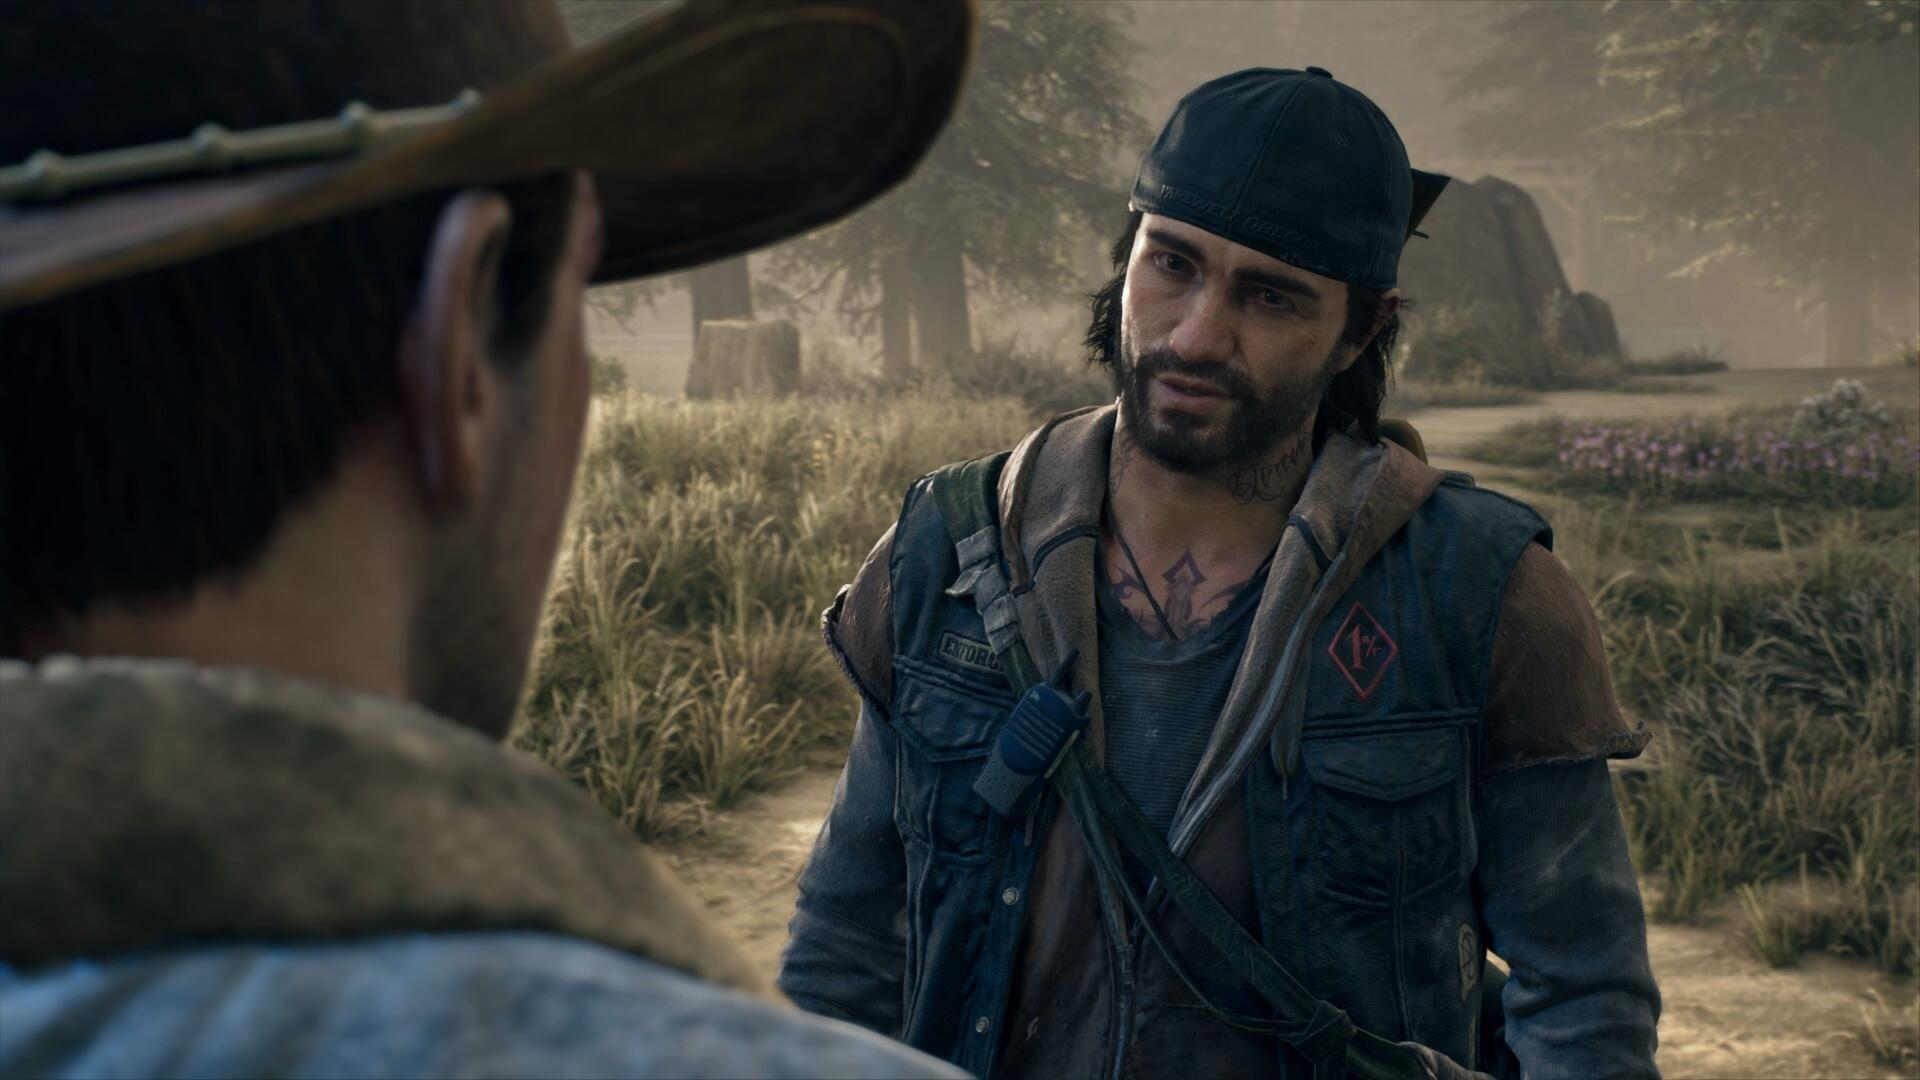 Days Gone: How to Craft Melee Weapons